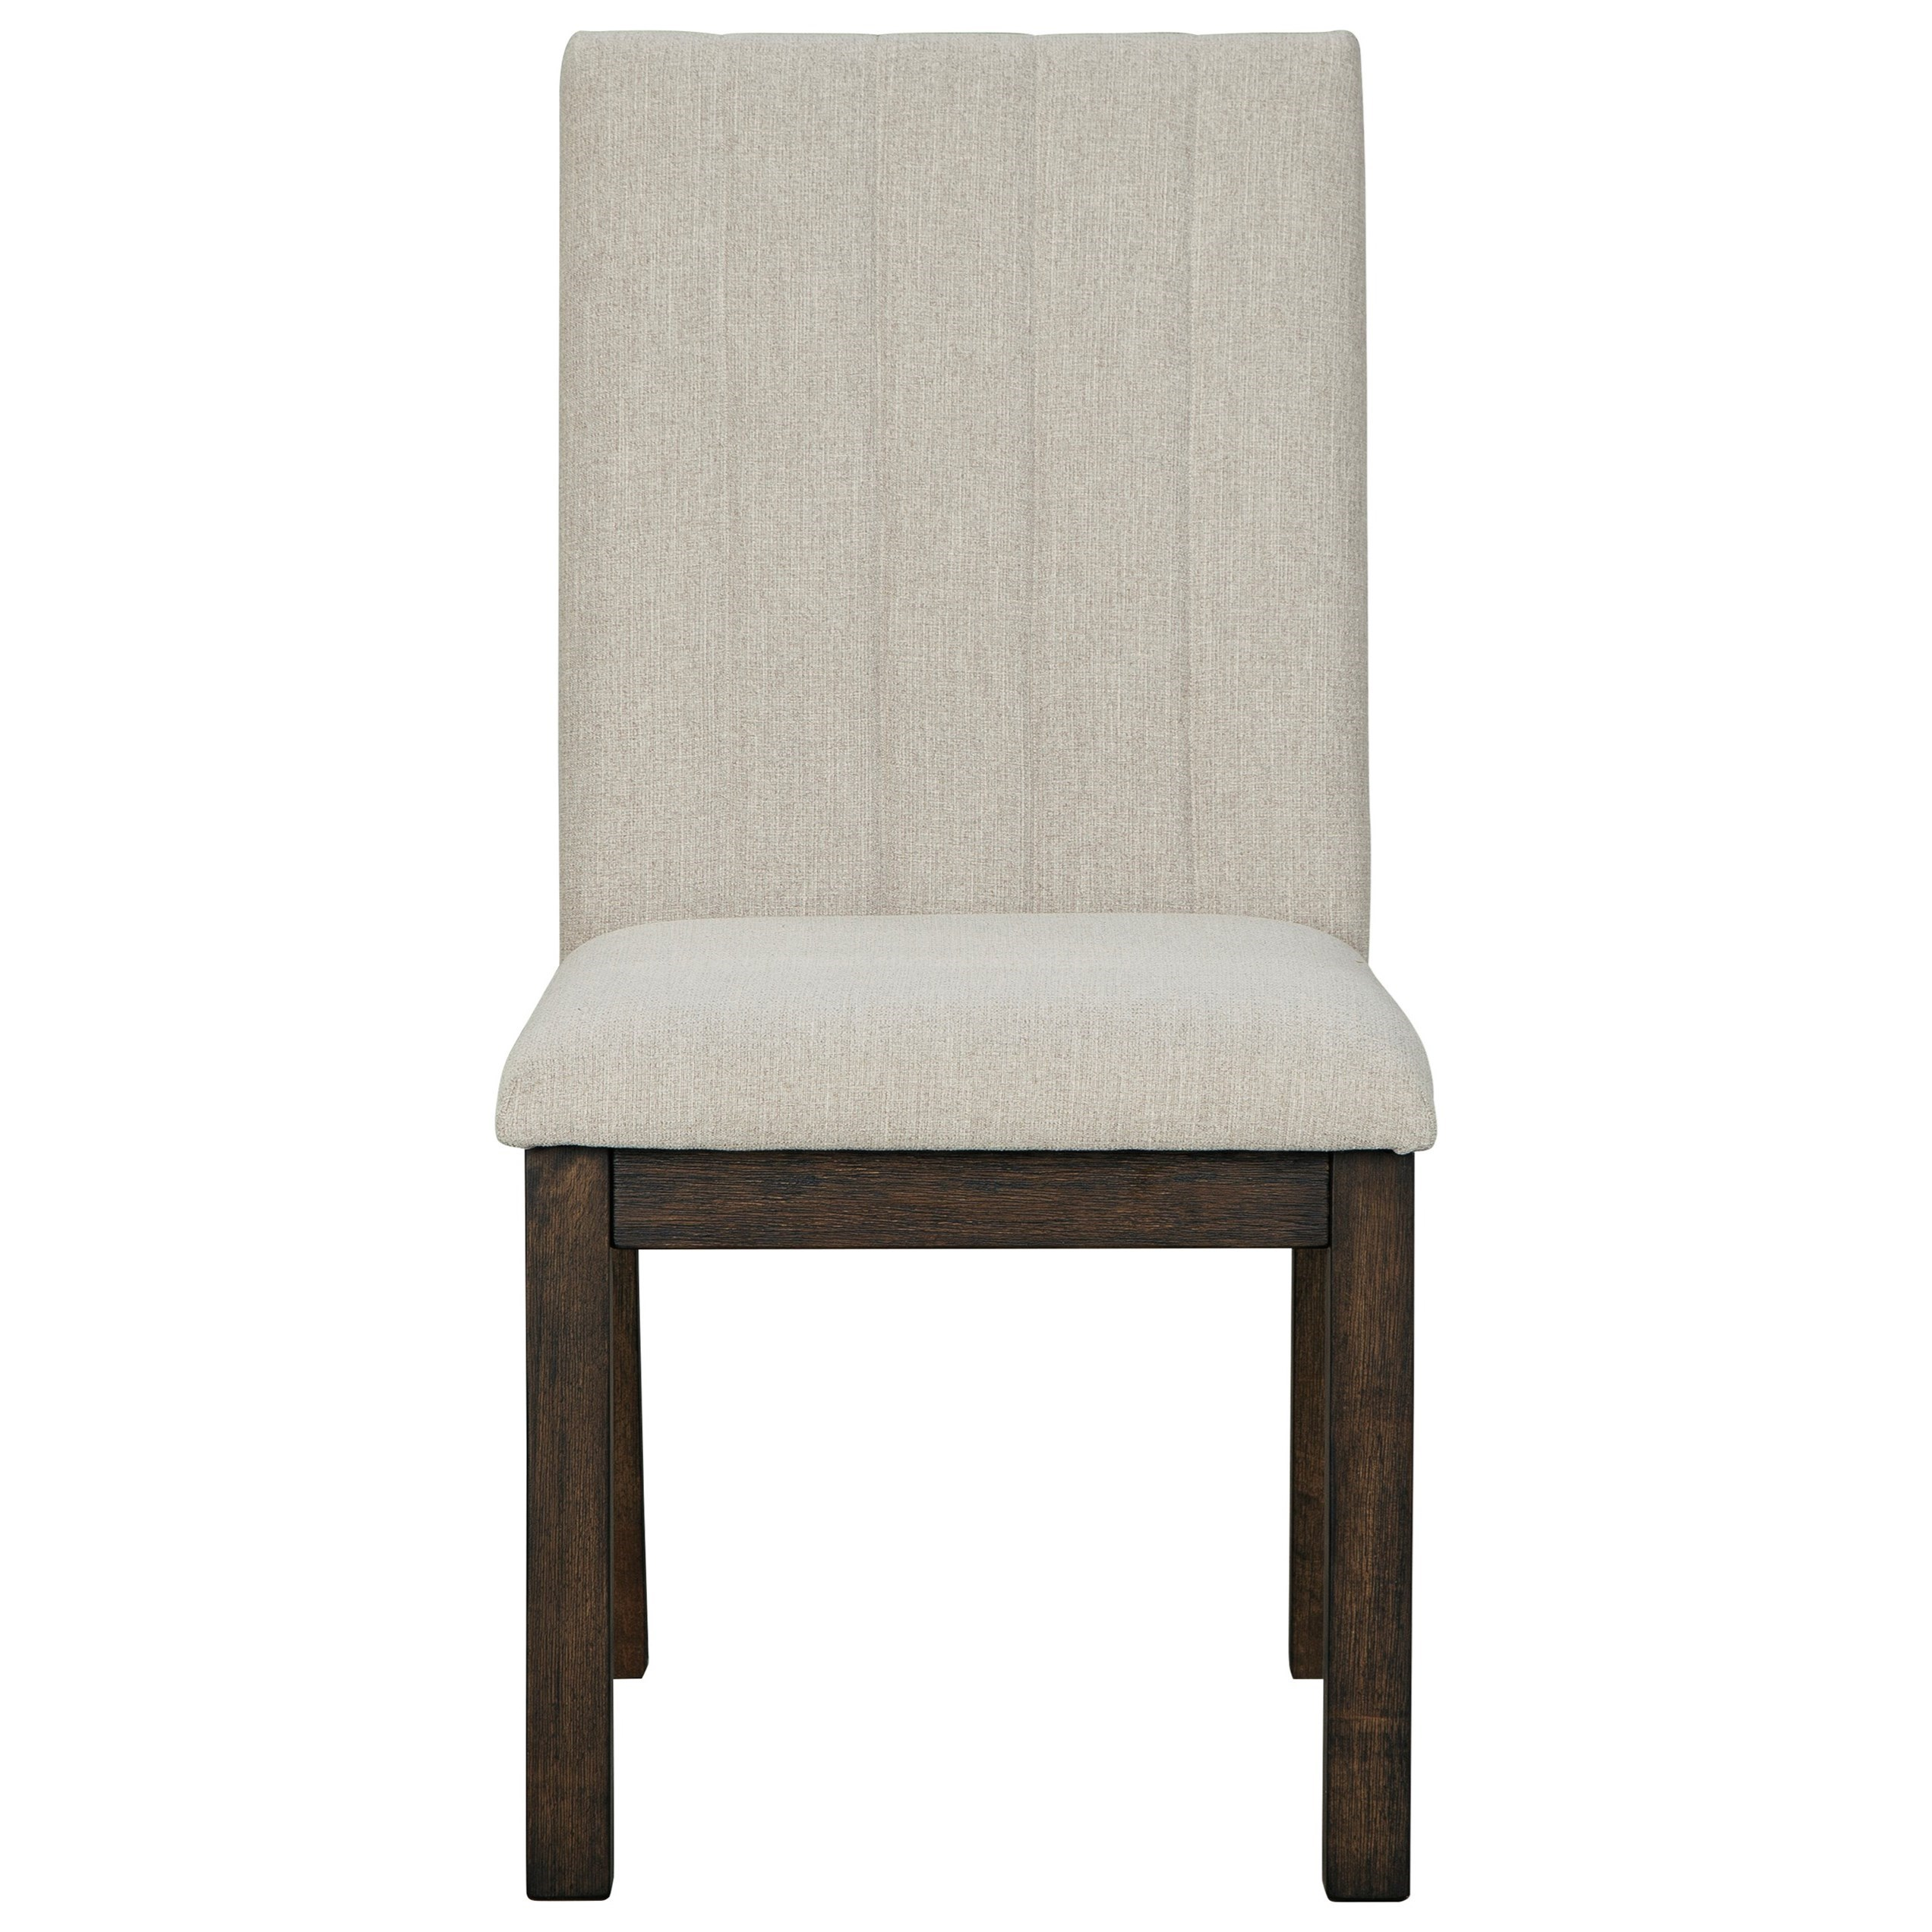 Dellbeck Dining Side Chair by Millennium at Value City Furniture